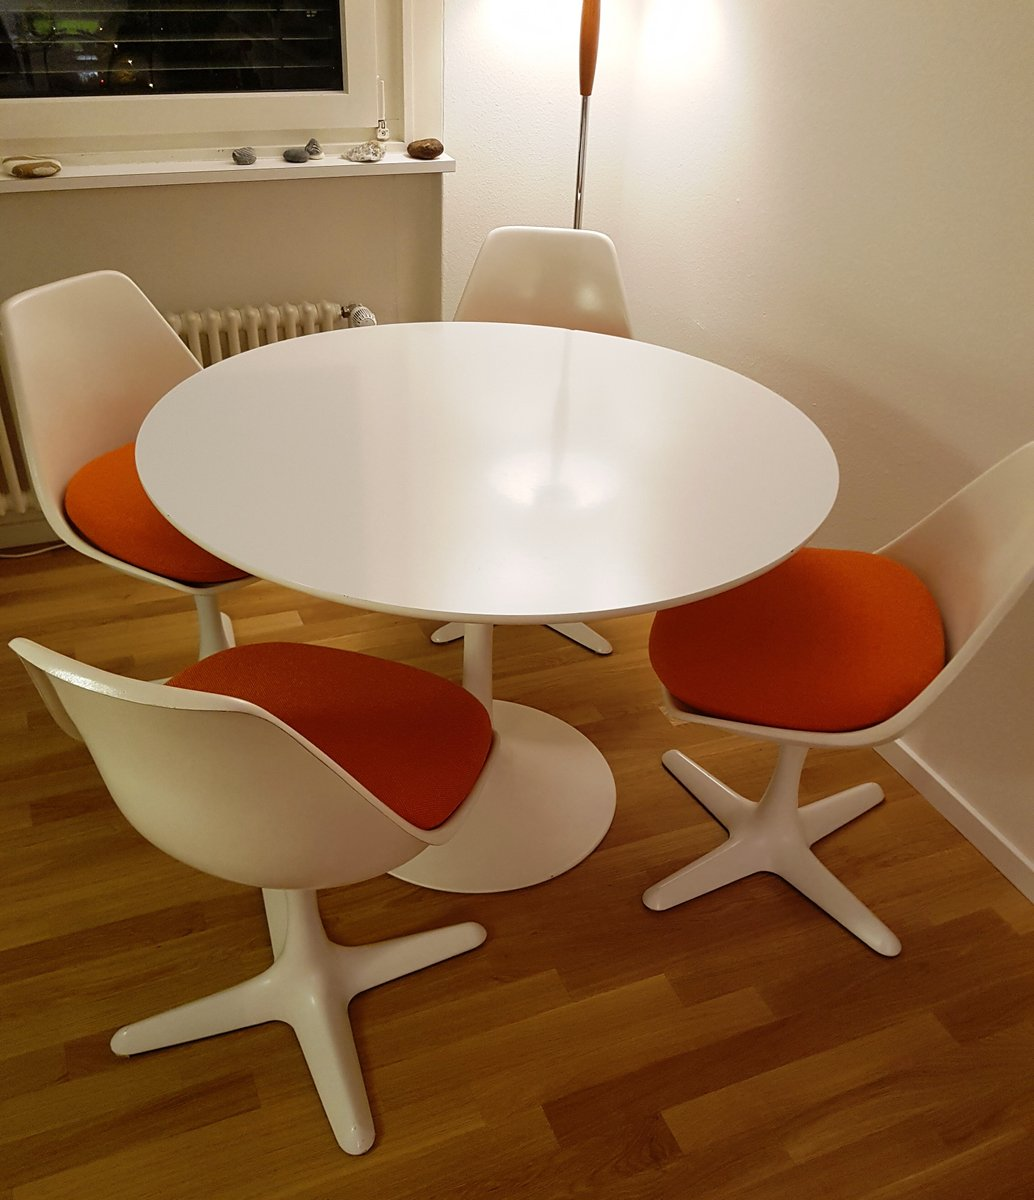 tulip table and chairs uk chair at end of bed vintage 4 by maurice burke for arkana